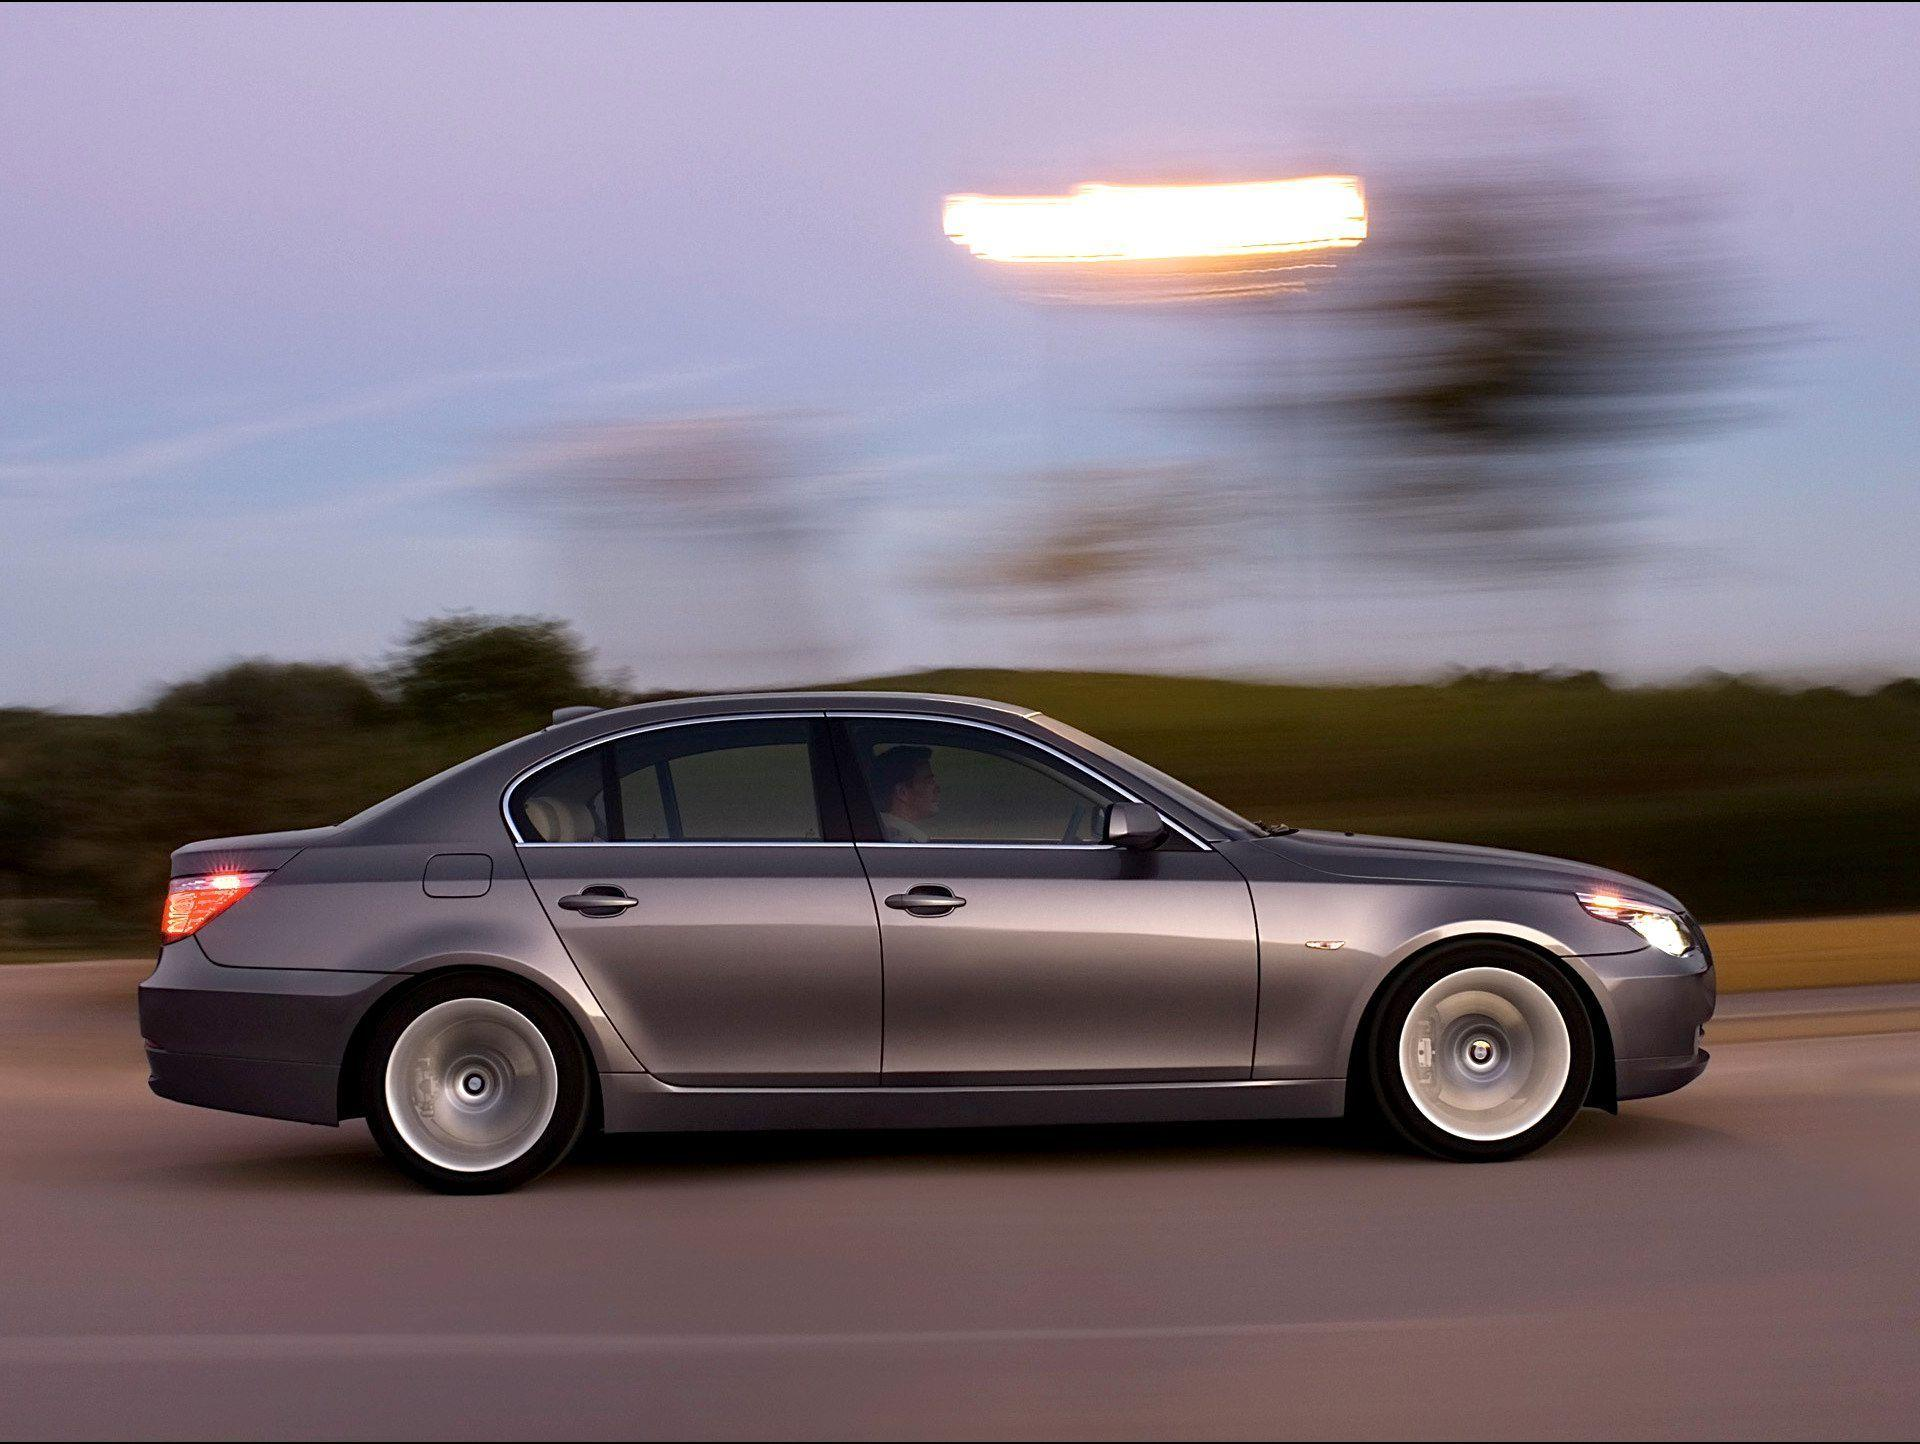 2008 BMW 5 Series Wallpaper 14 - 1920x1440